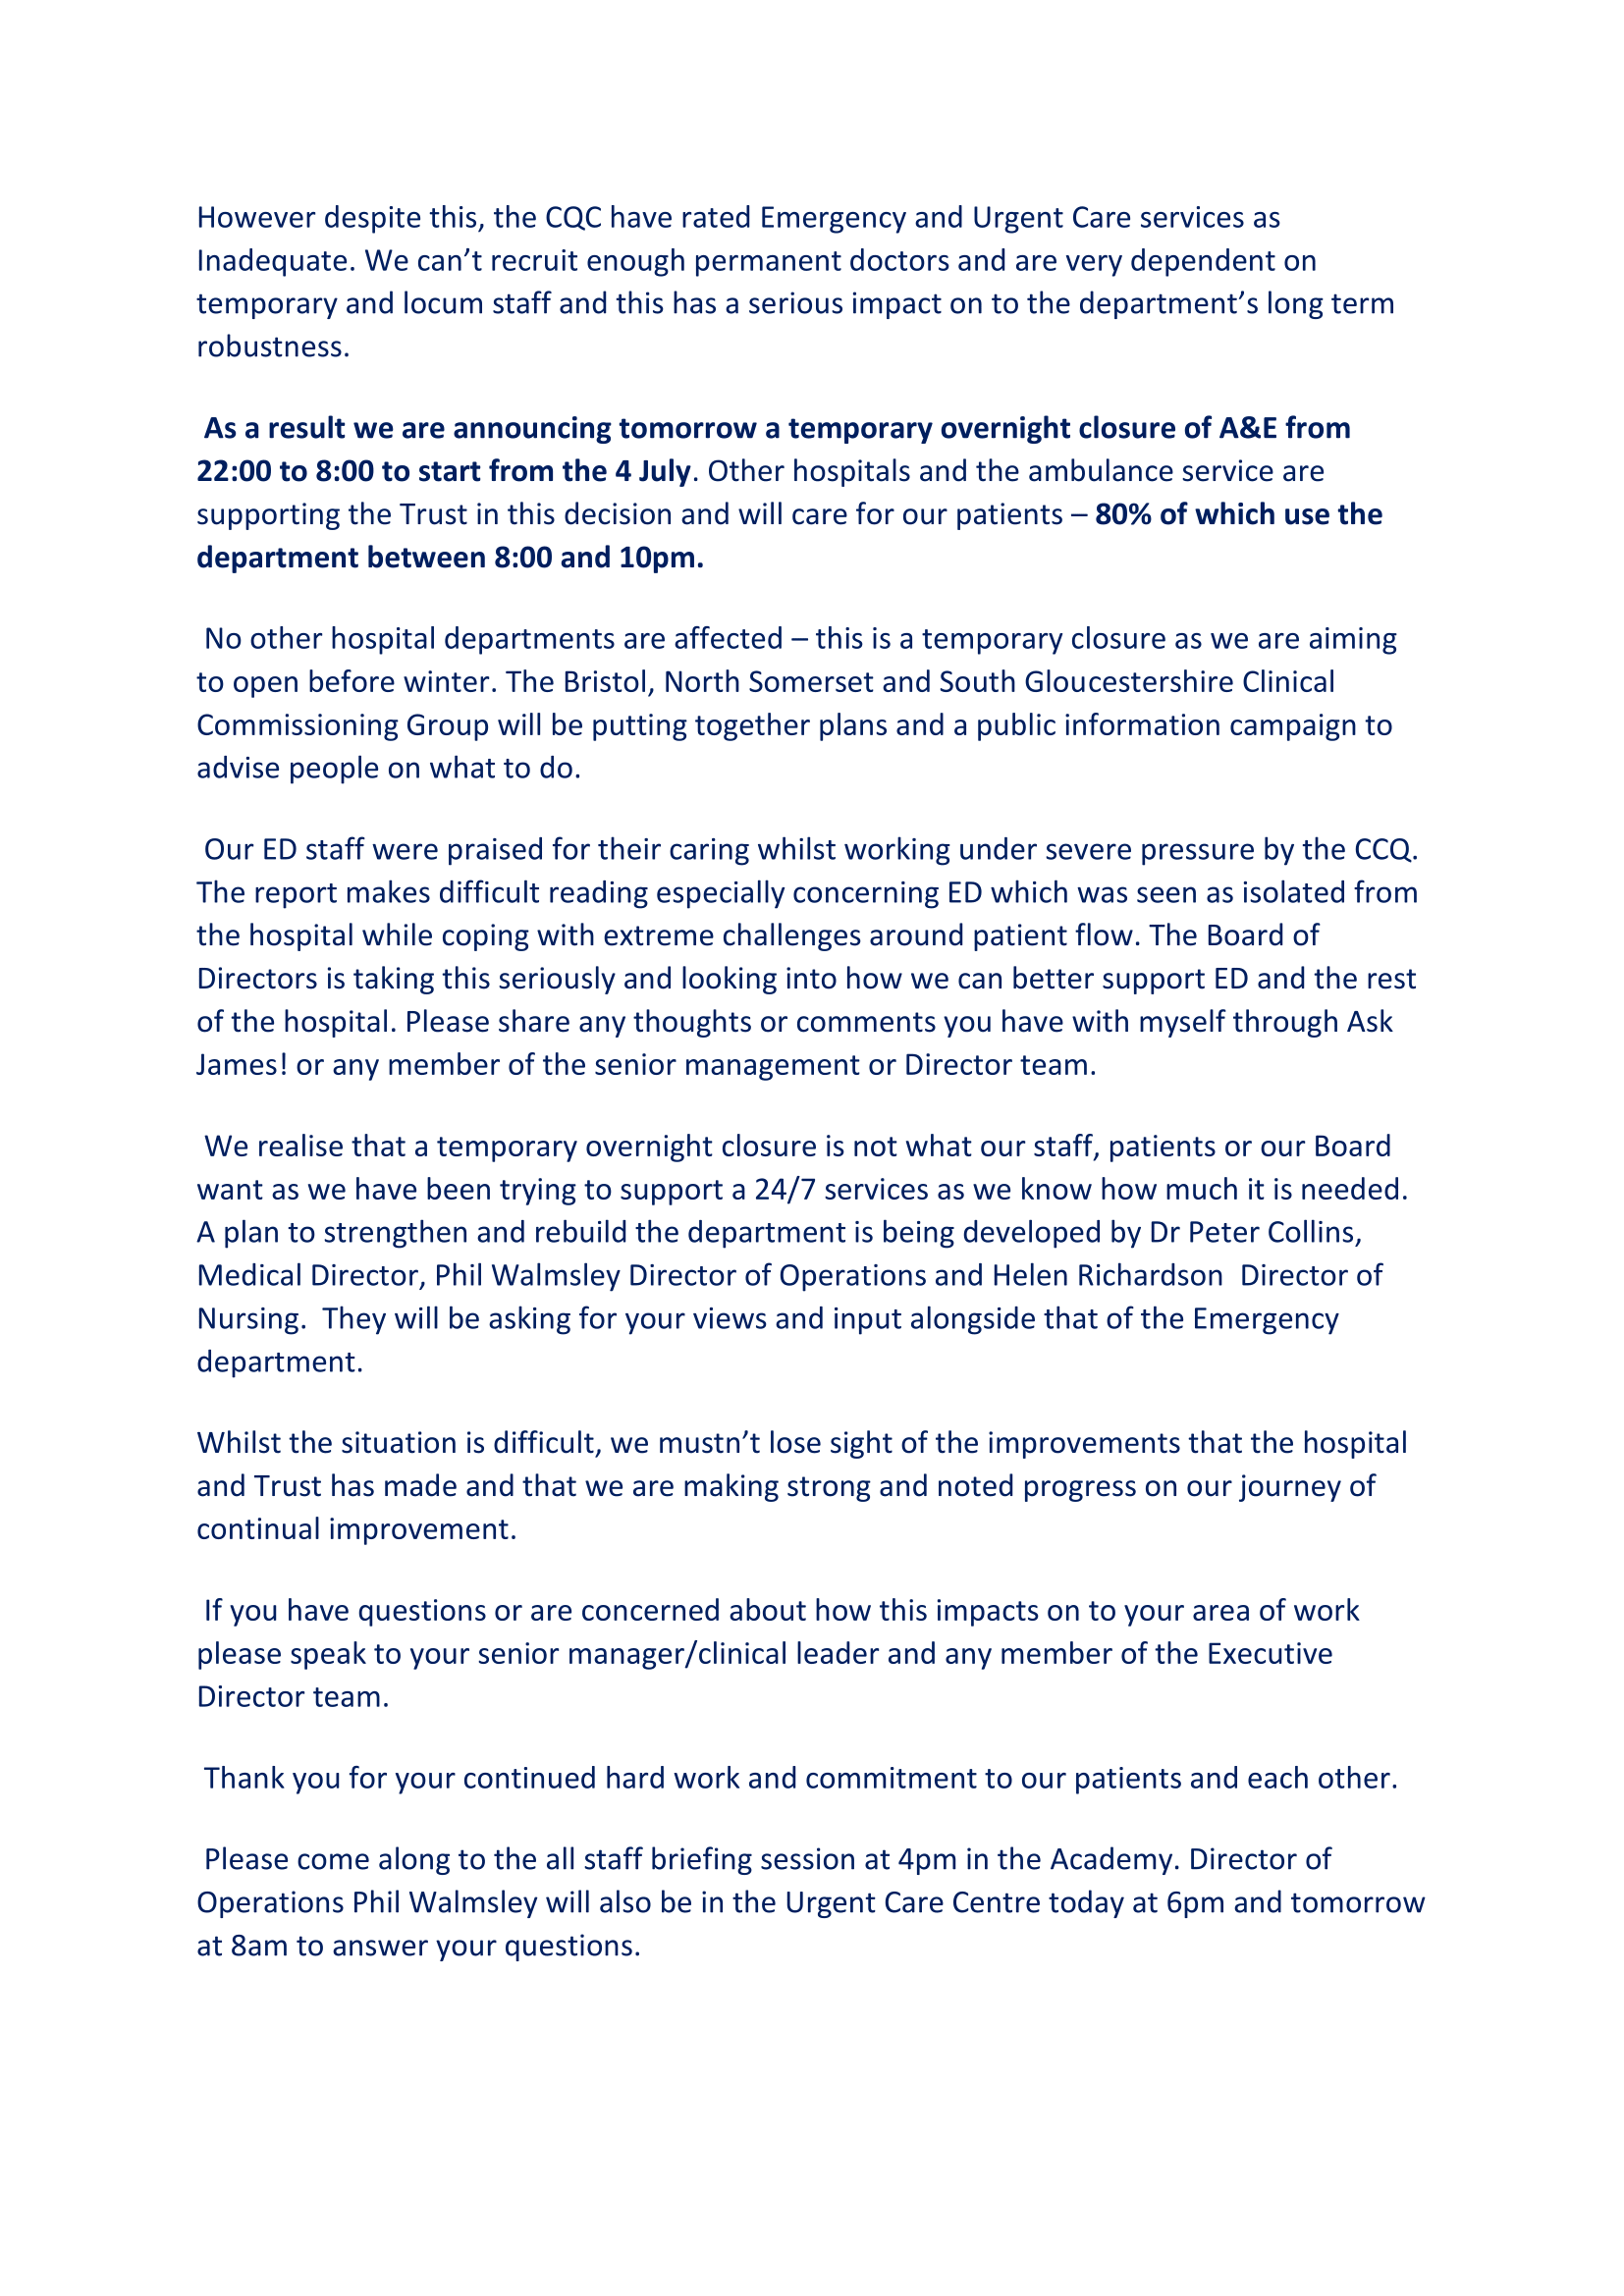 20170613_Accident_and_Emergency_closure_letter-2.png